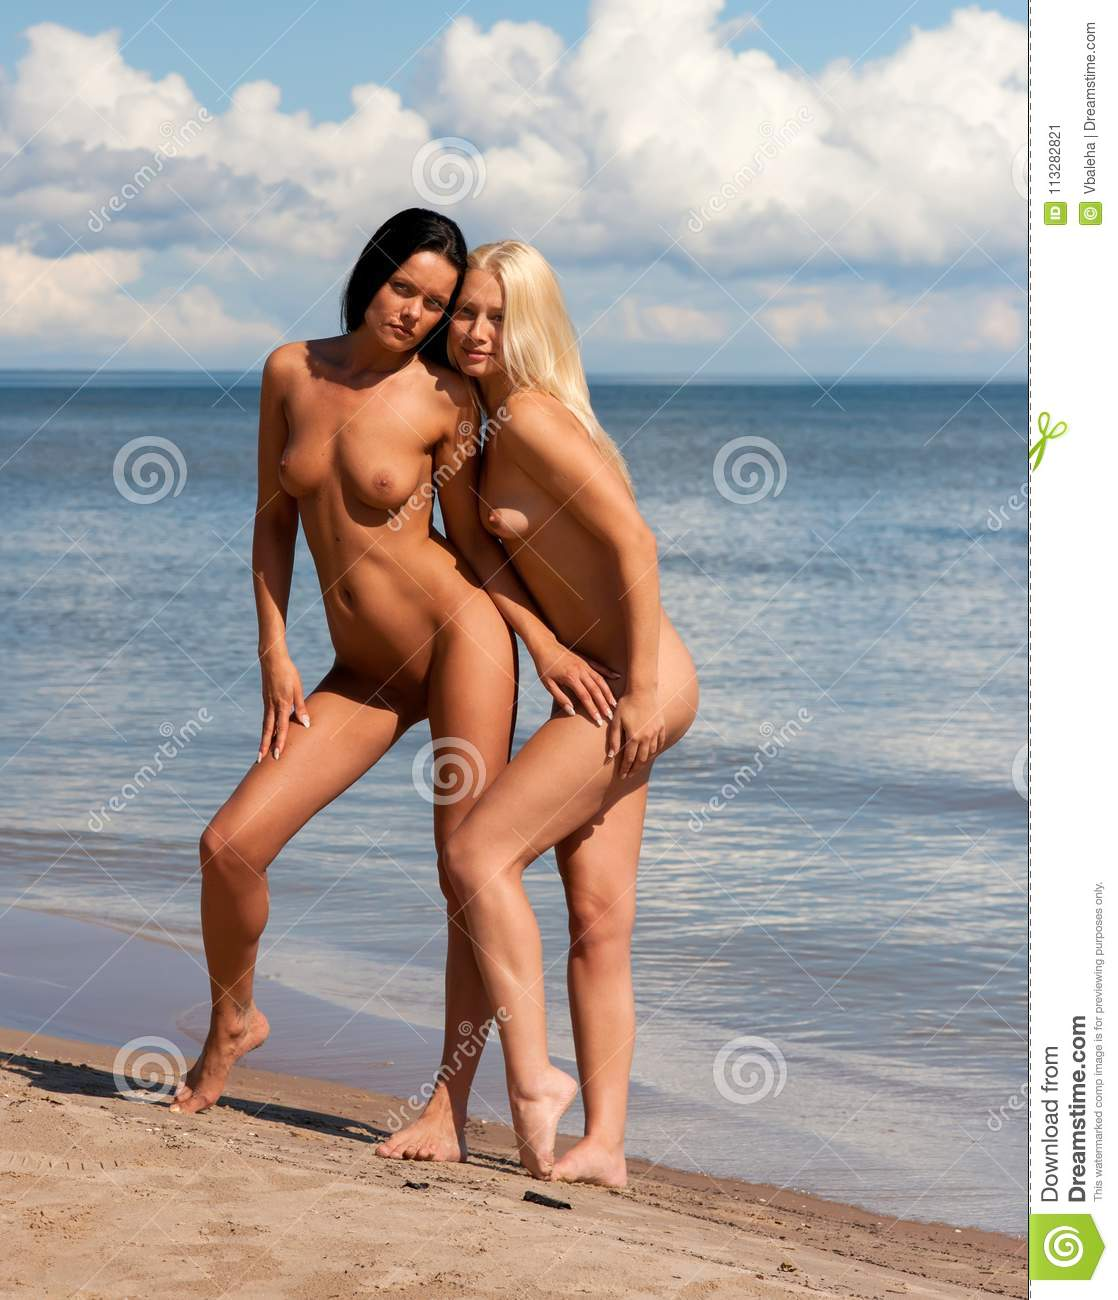 Naked nudist teen picture